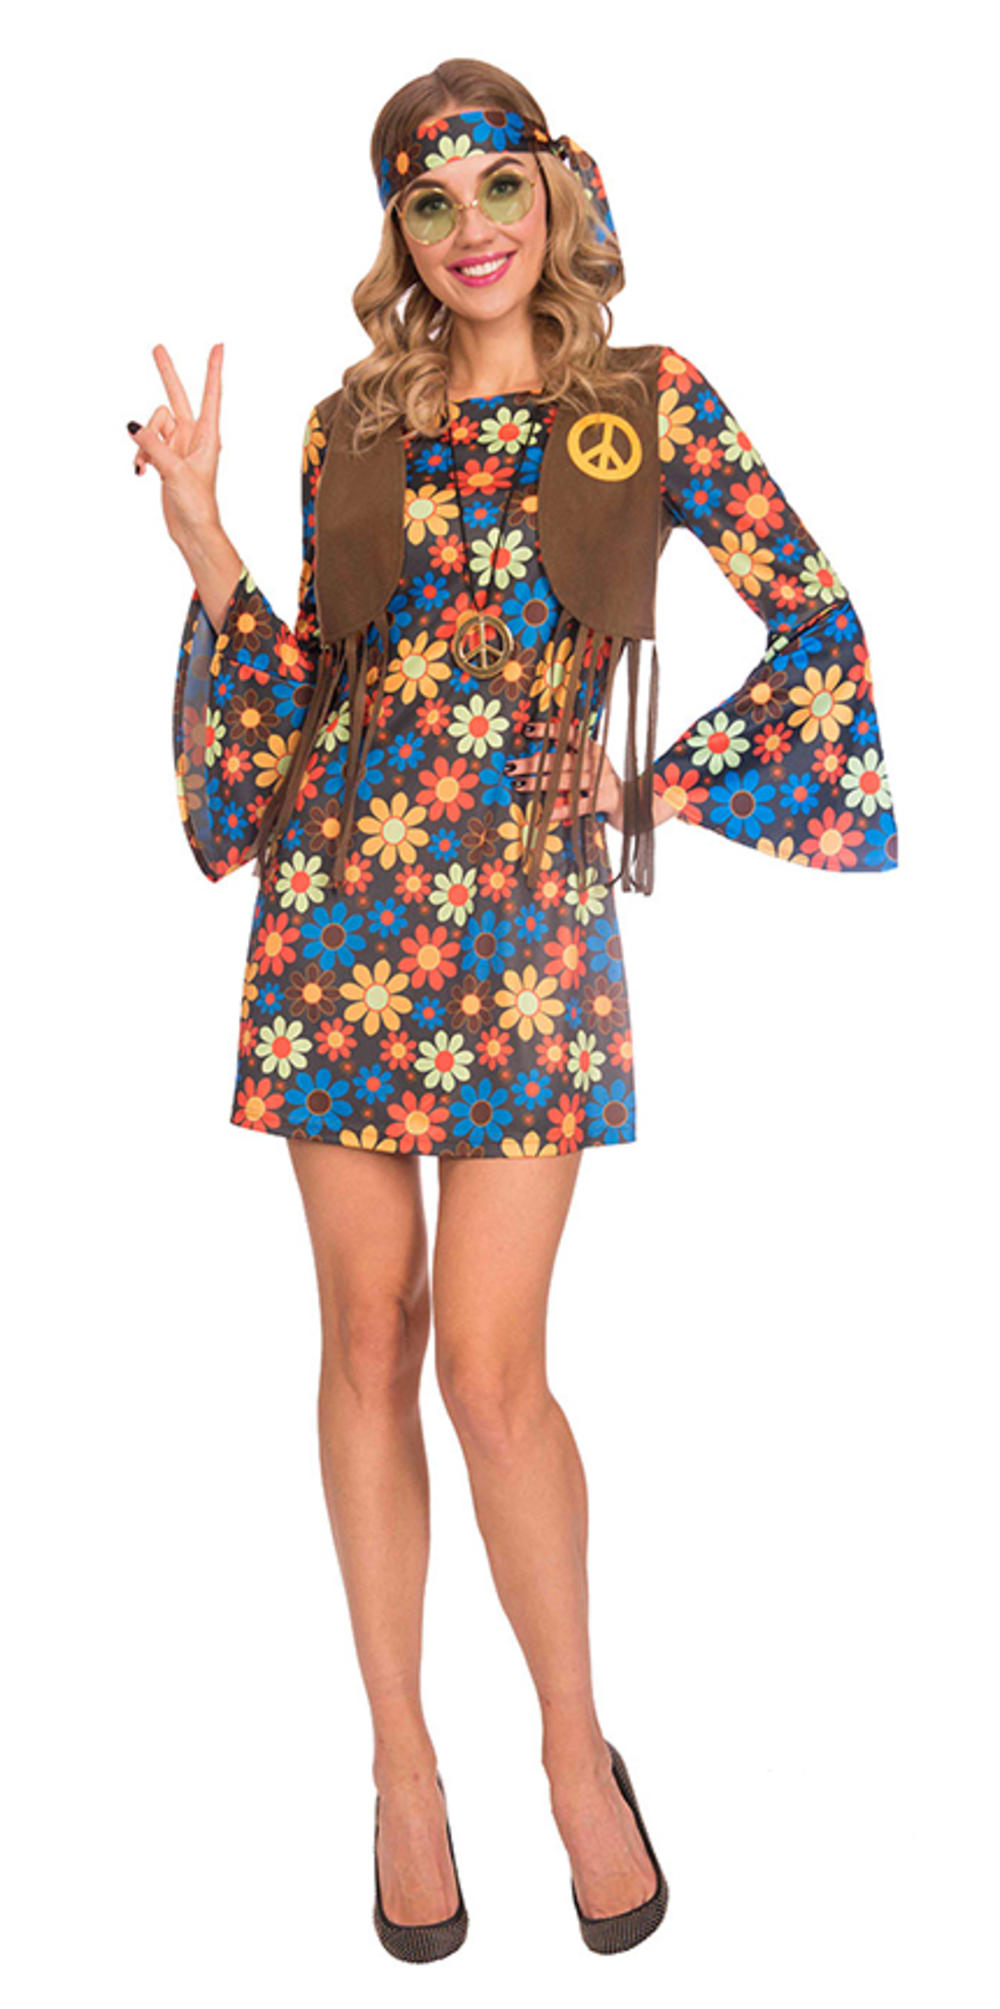 60s Groovy Hippy Woman Ladies Fancy Dress 1960s Hippie Adults Costume Outfit New